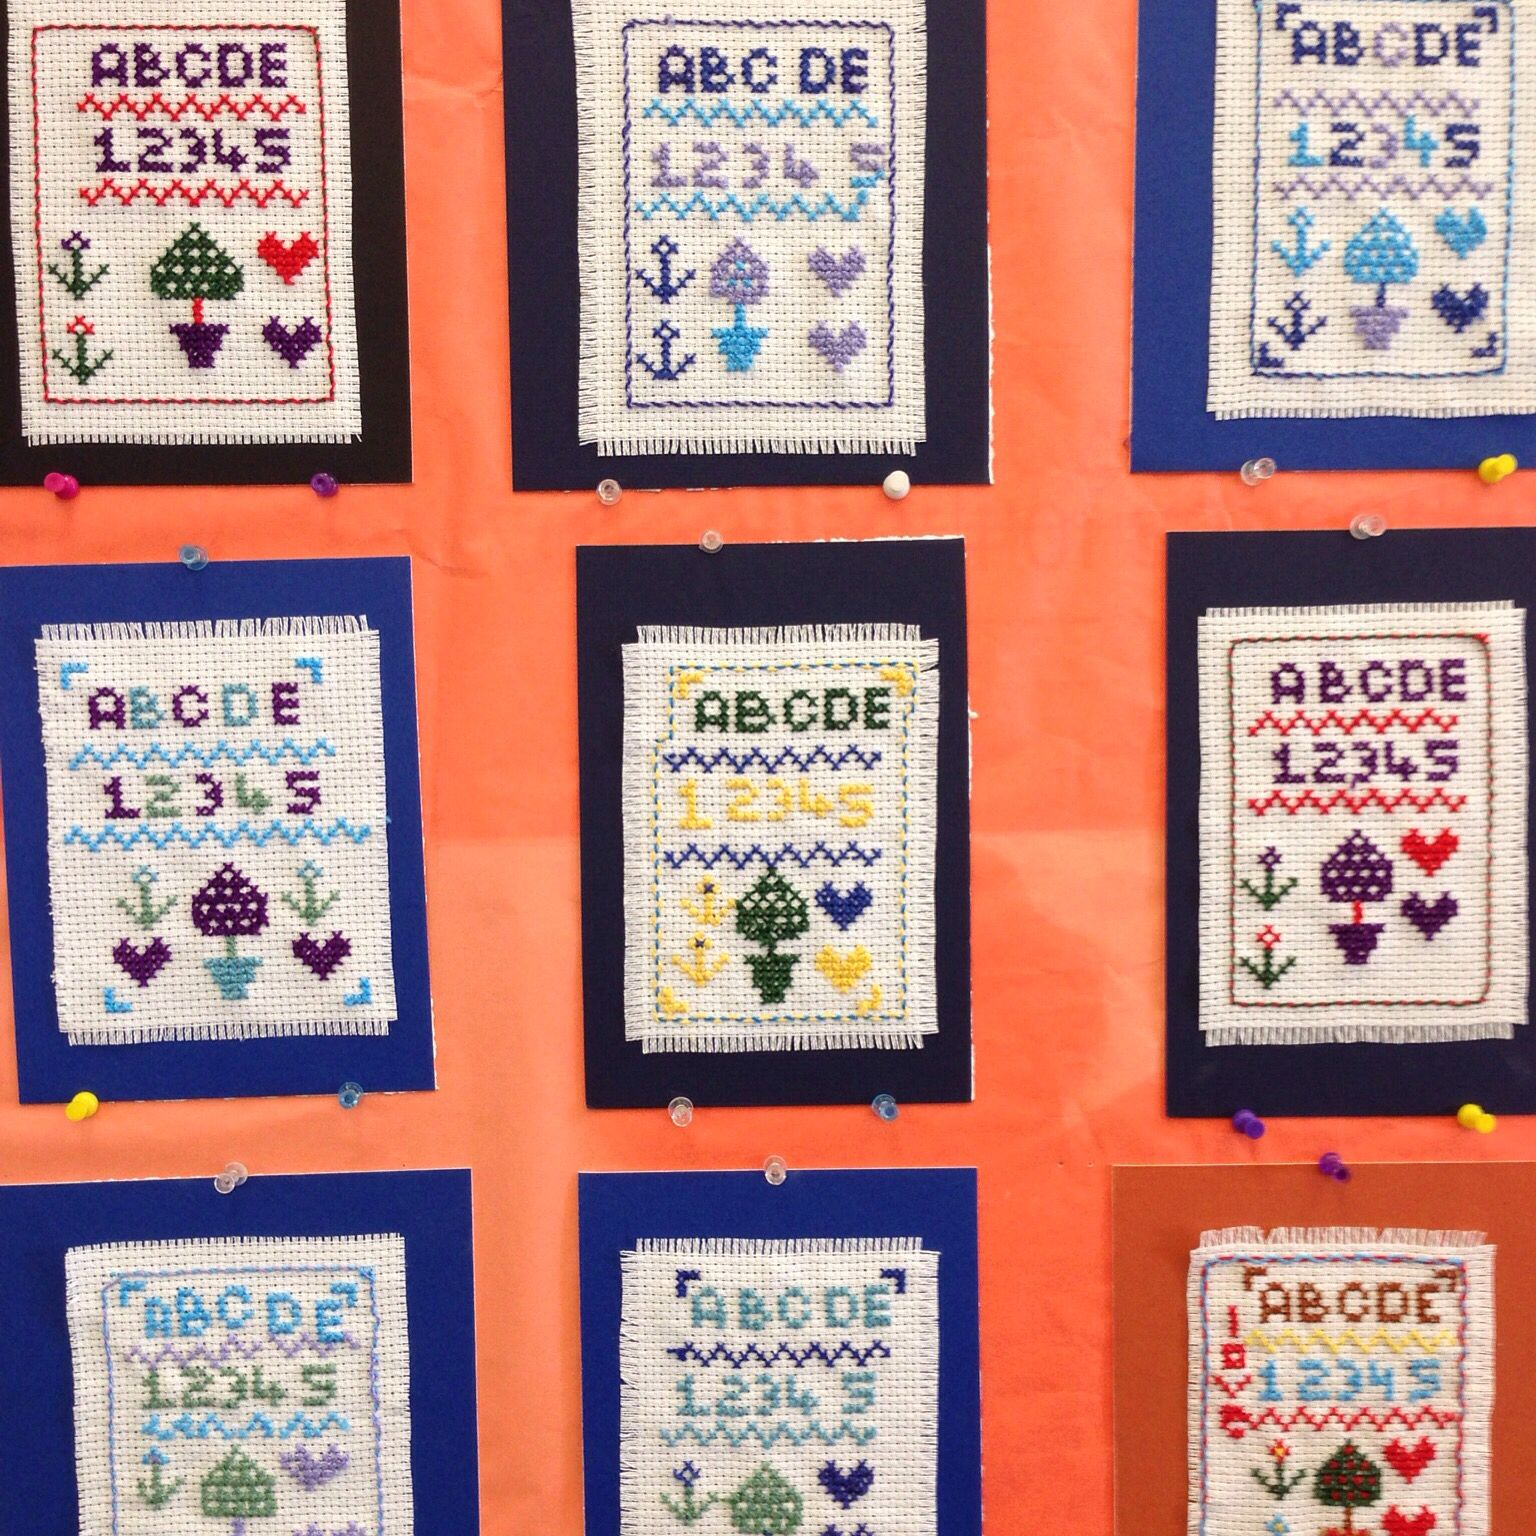 Just a very few of the 90 mini samplers embroidered by the third graders at El Granada Elementary School last year. They did a wonderful job and loved every minute of it.